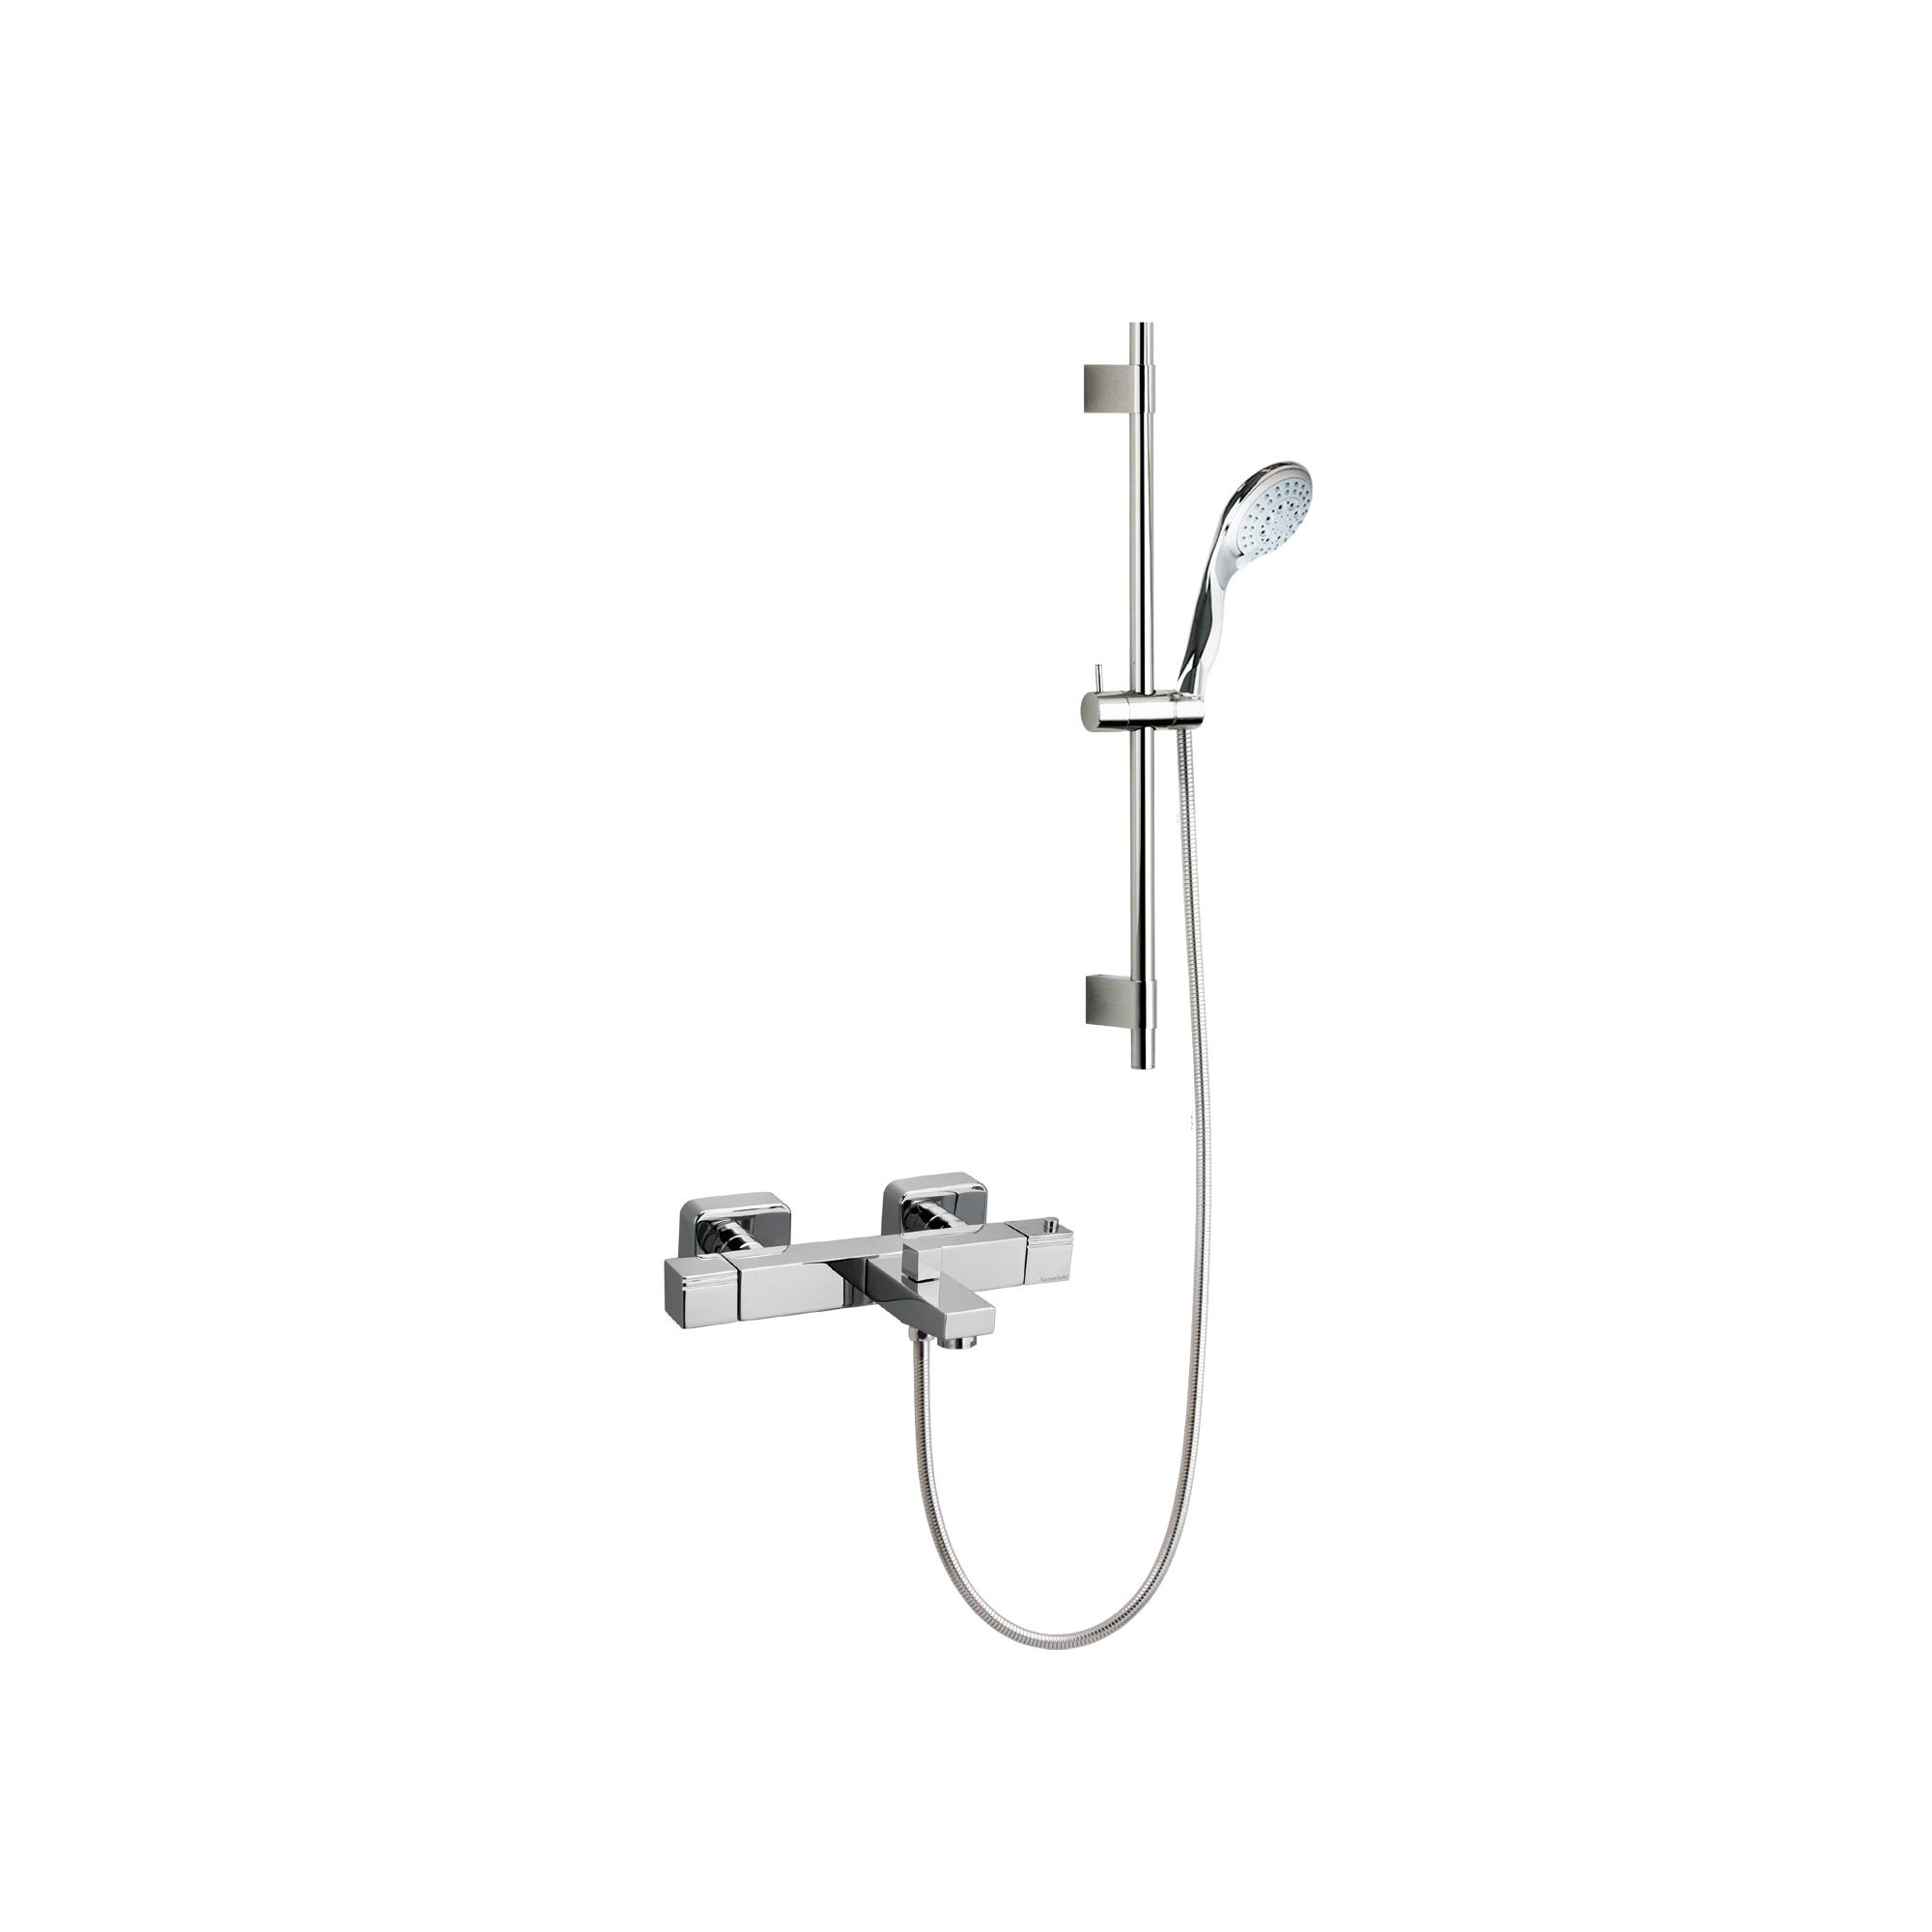 Ramon Soler Thermokuatro Exposed Thermostatic Bath/Shower Mixer with Jupiter Shower Kit at Tescos Direct